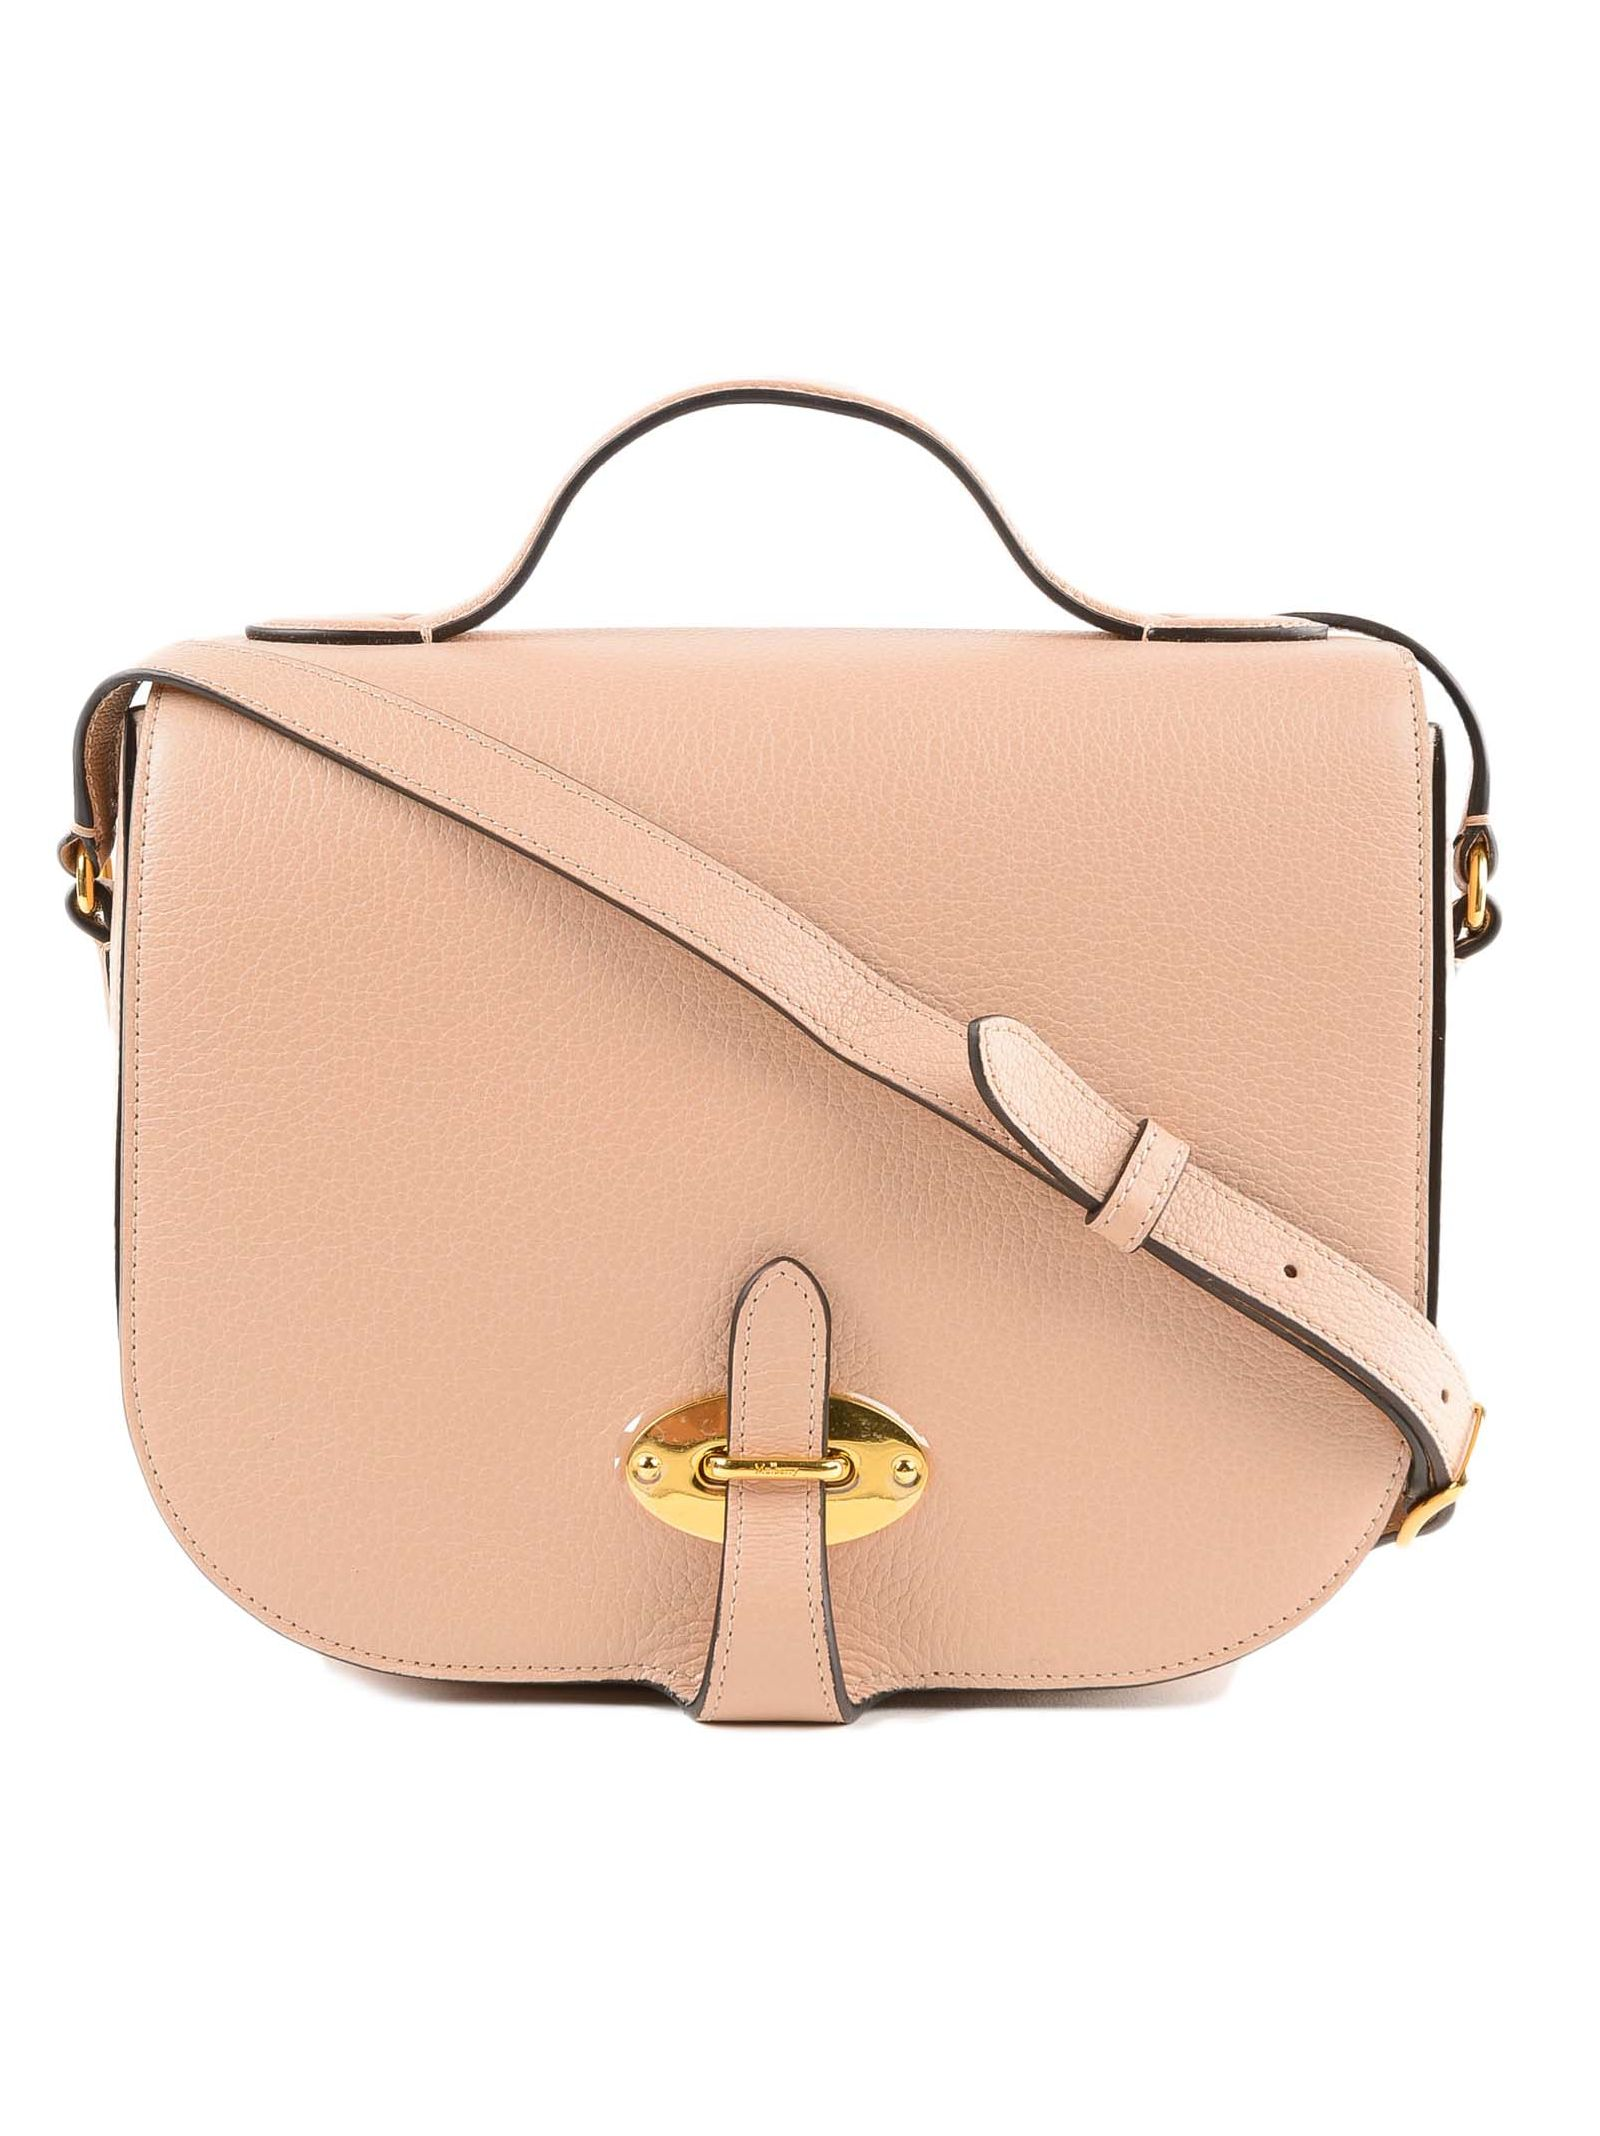 0a6d969371a9 Mulberry Tenby Shoulder Bag In Jrosewater